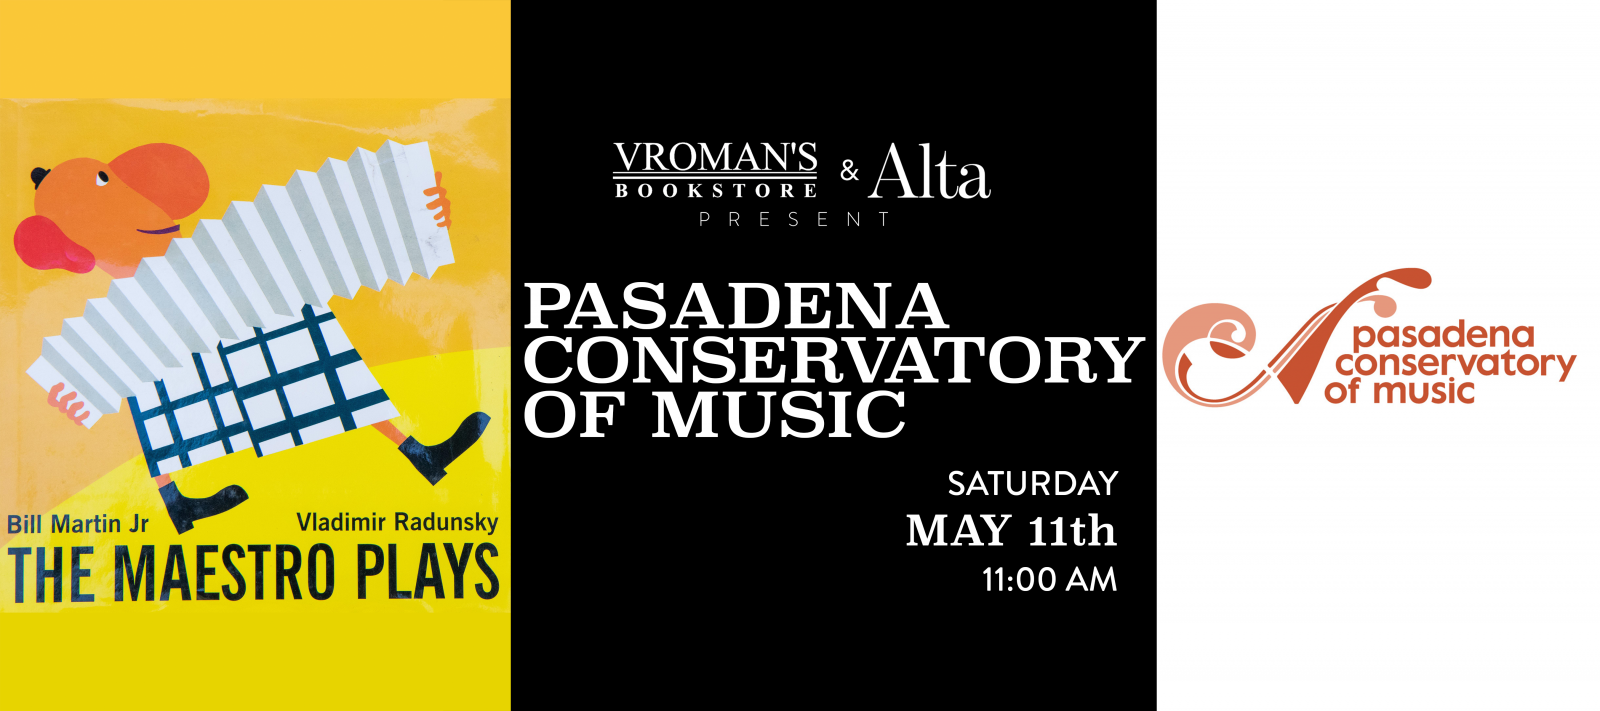 Pasadena Conservatory of Music presents The Maestro Plays Saturday May 11th at 11am